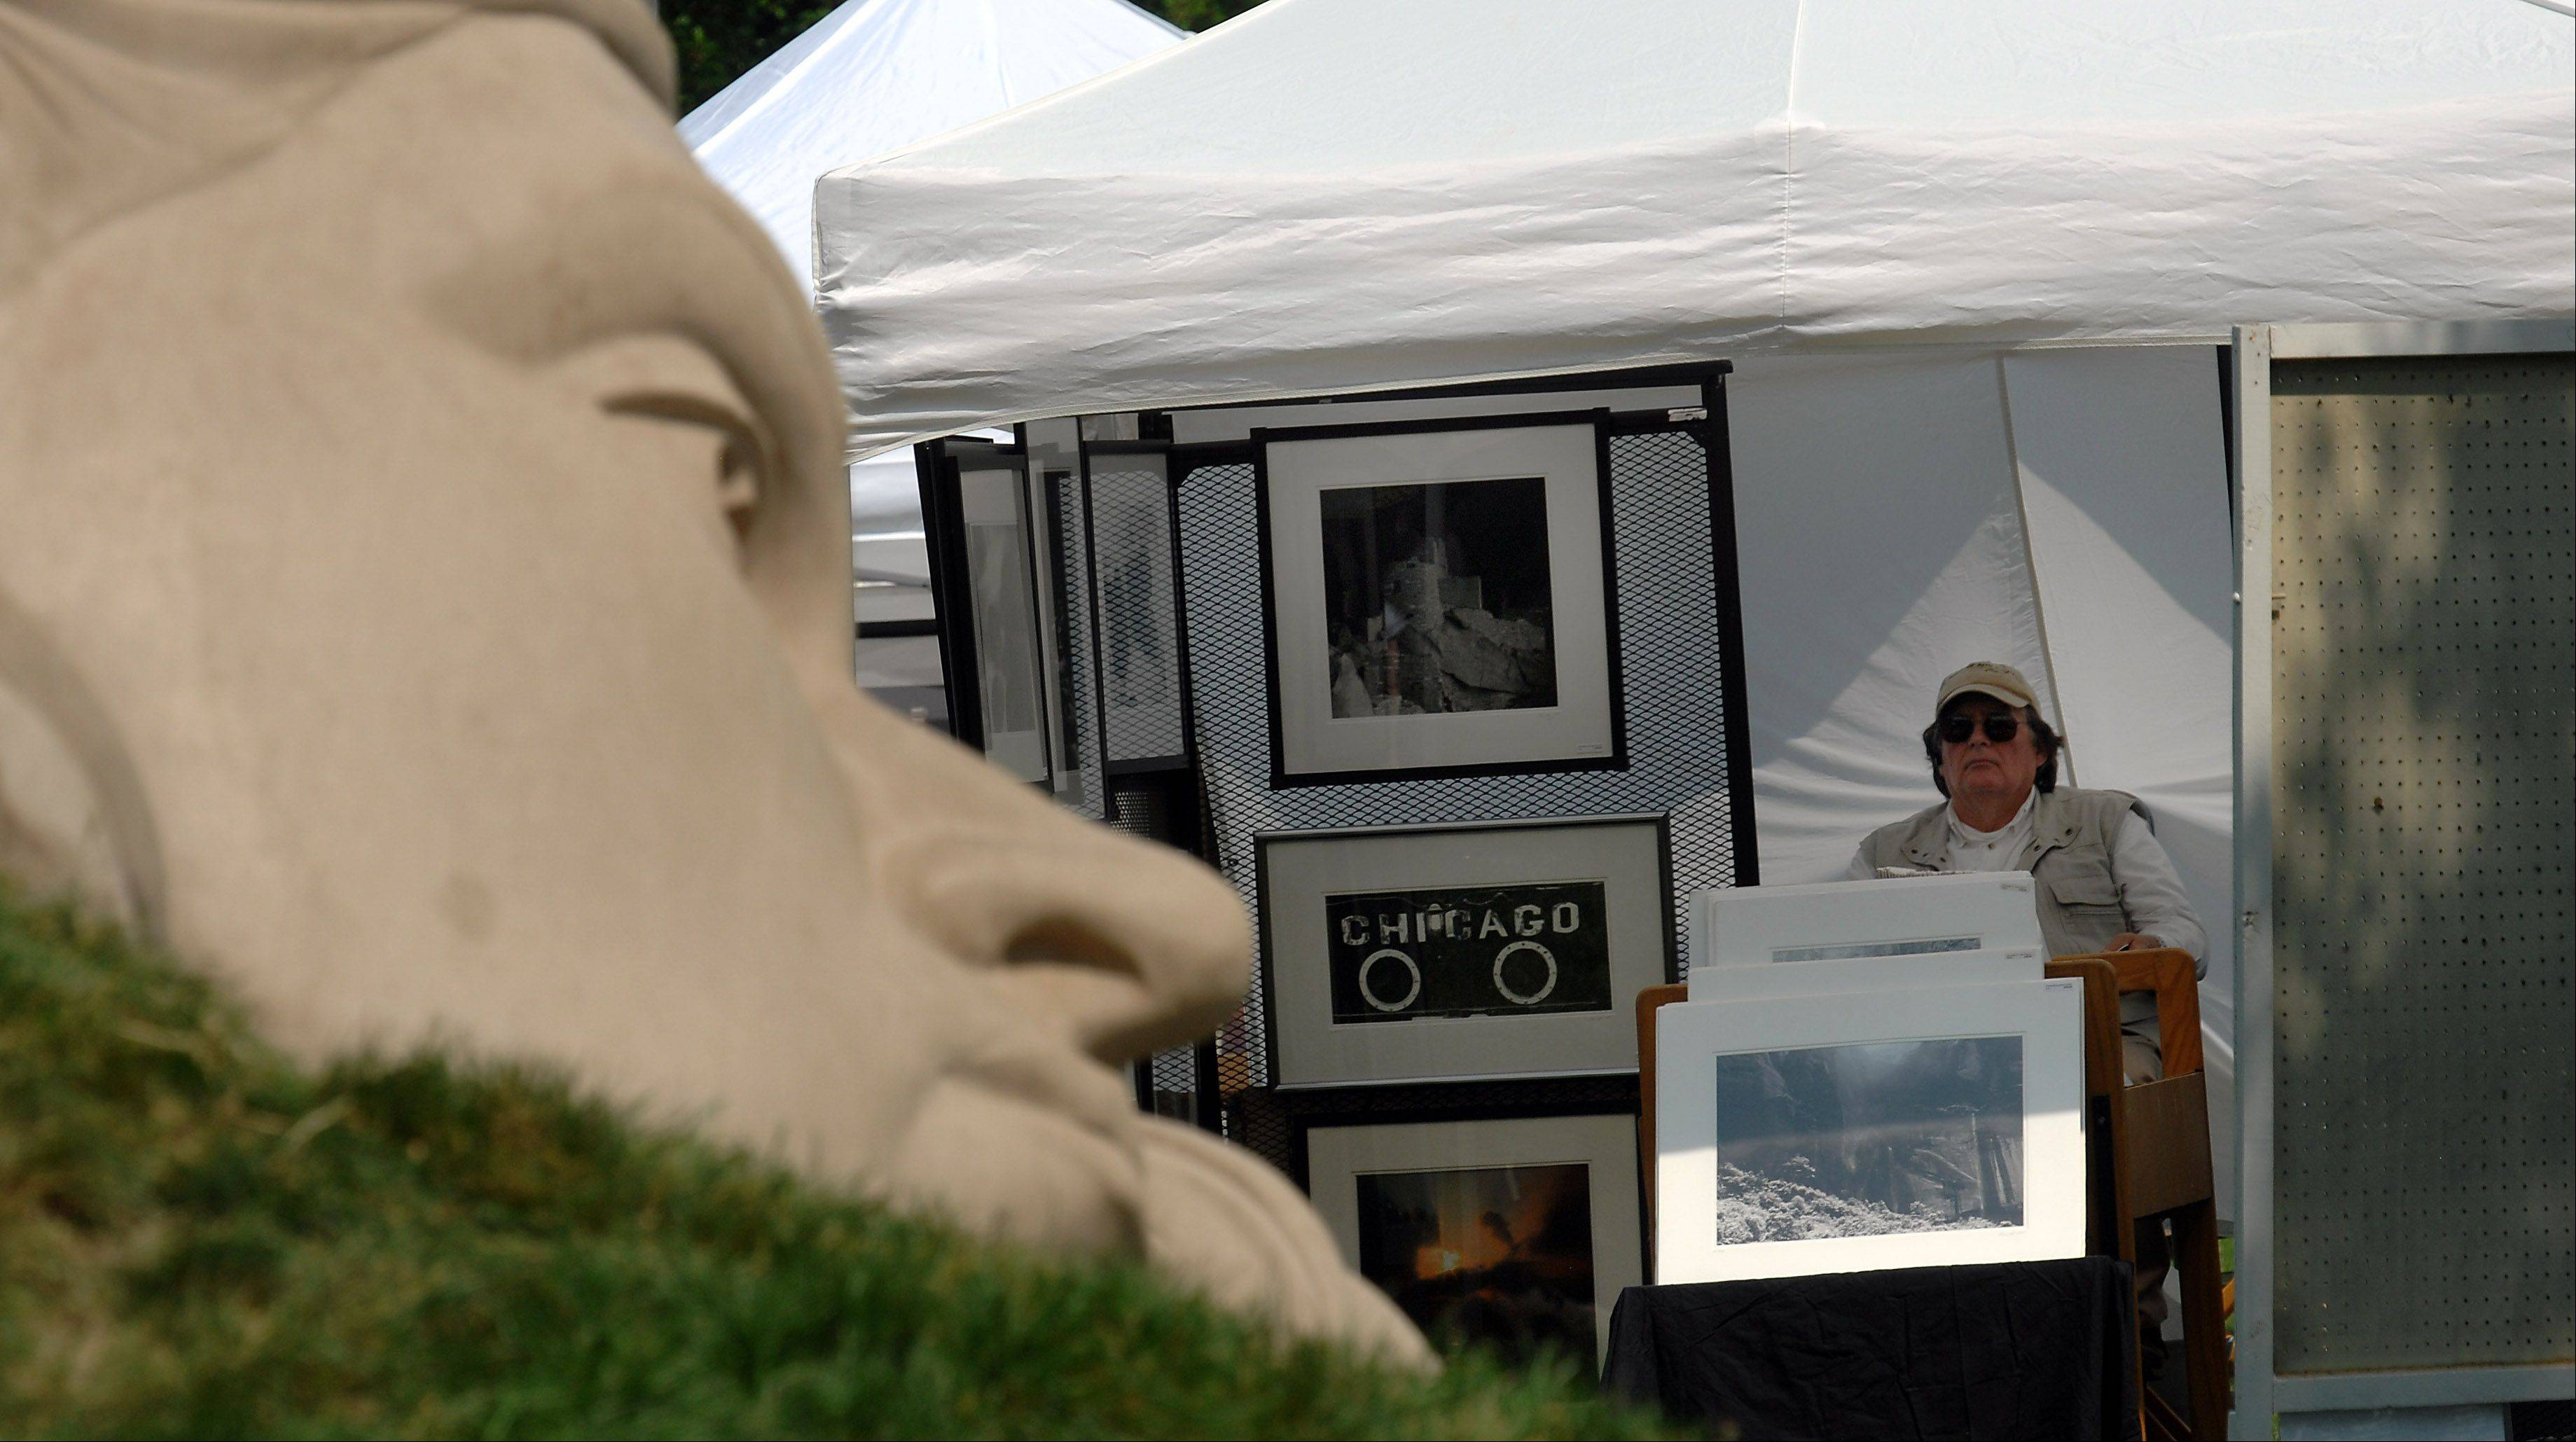 James Hojnacki of Hoffman Estates waits for patrons to view his photography work at the Schaumburg Prairie Arts Festival on Saturday.